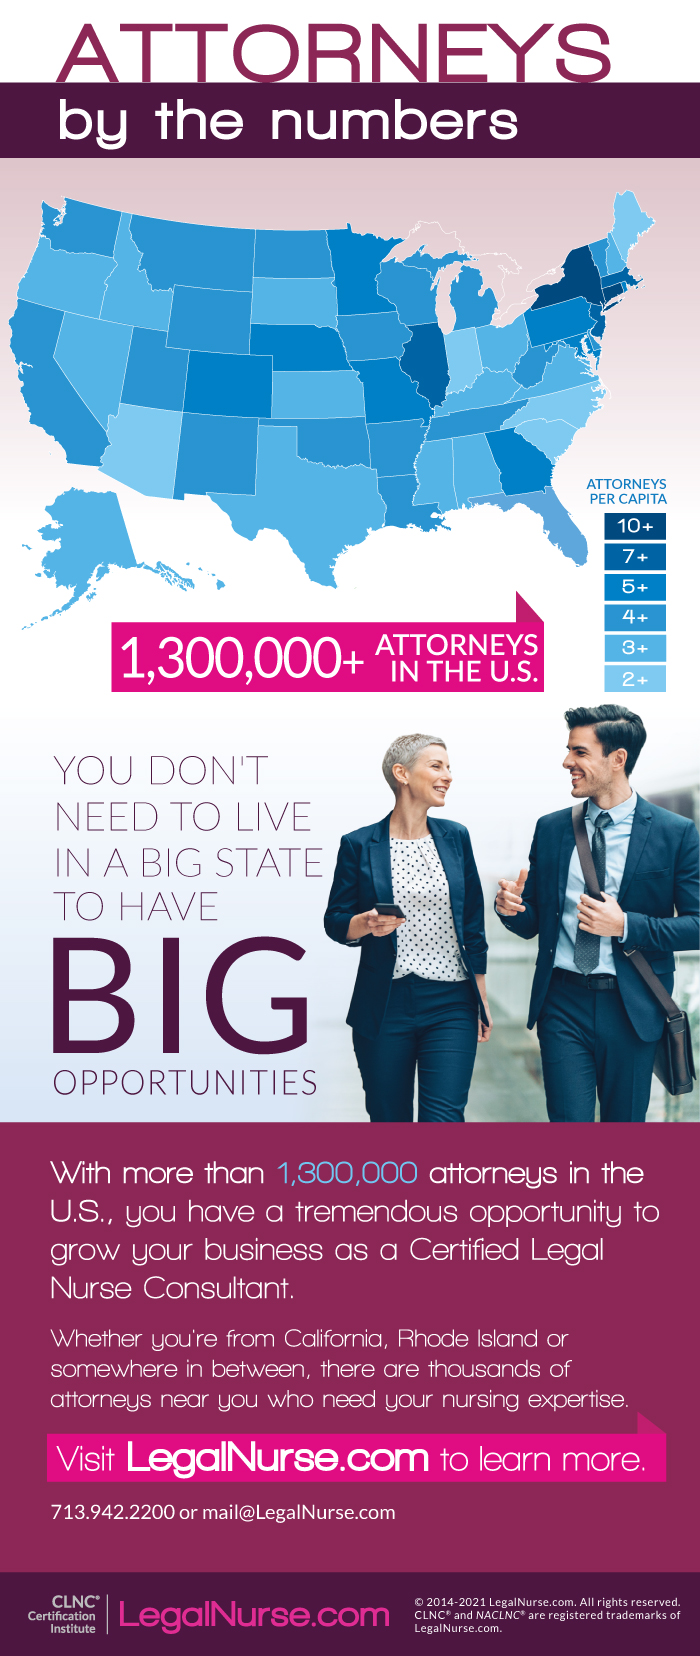 Number of Attorneys in the United States growing opportunities for Legal Nurse Consultants